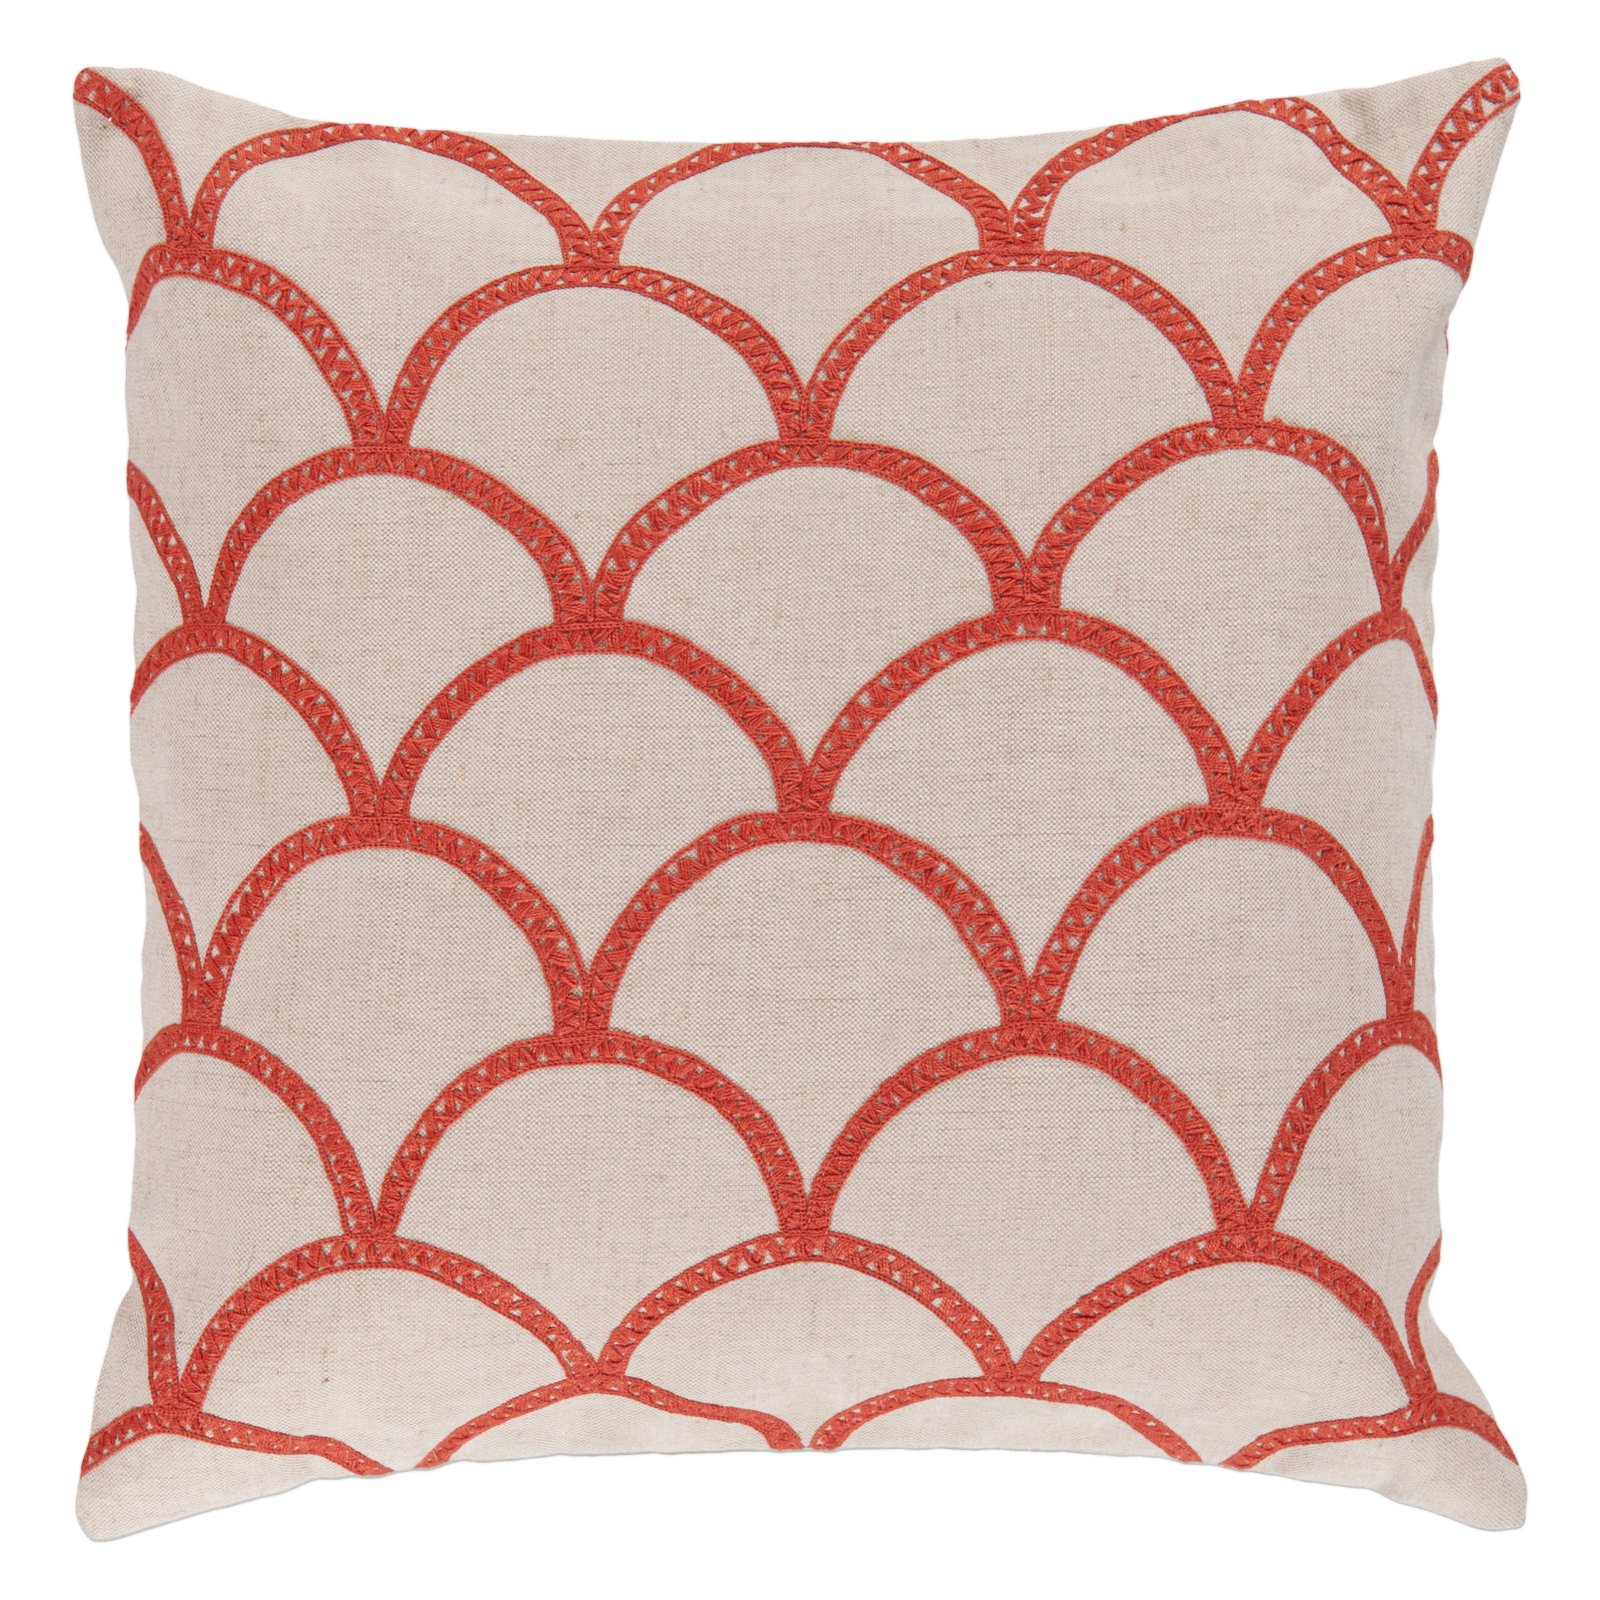 Surya Overlapping Oval Decorative Throw Pillow